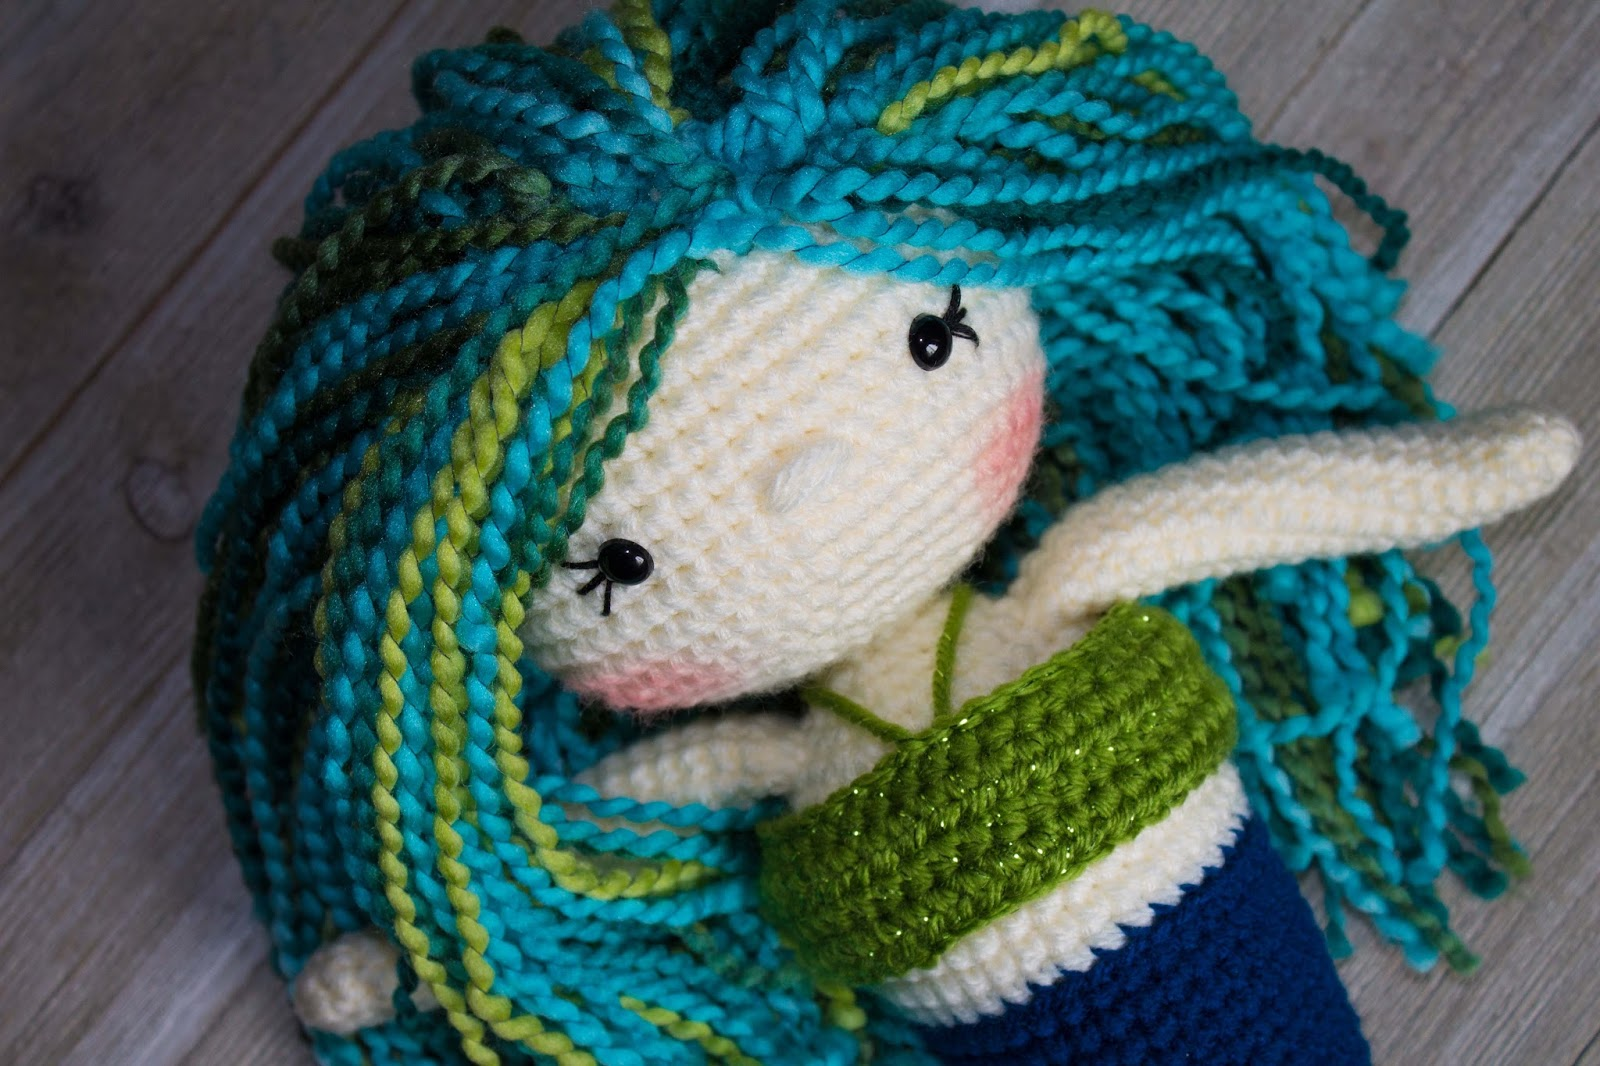 Free Crochet Amigurumi Mermaid Pattern : The friendly mermaid crochet doll thefriendlyredfox